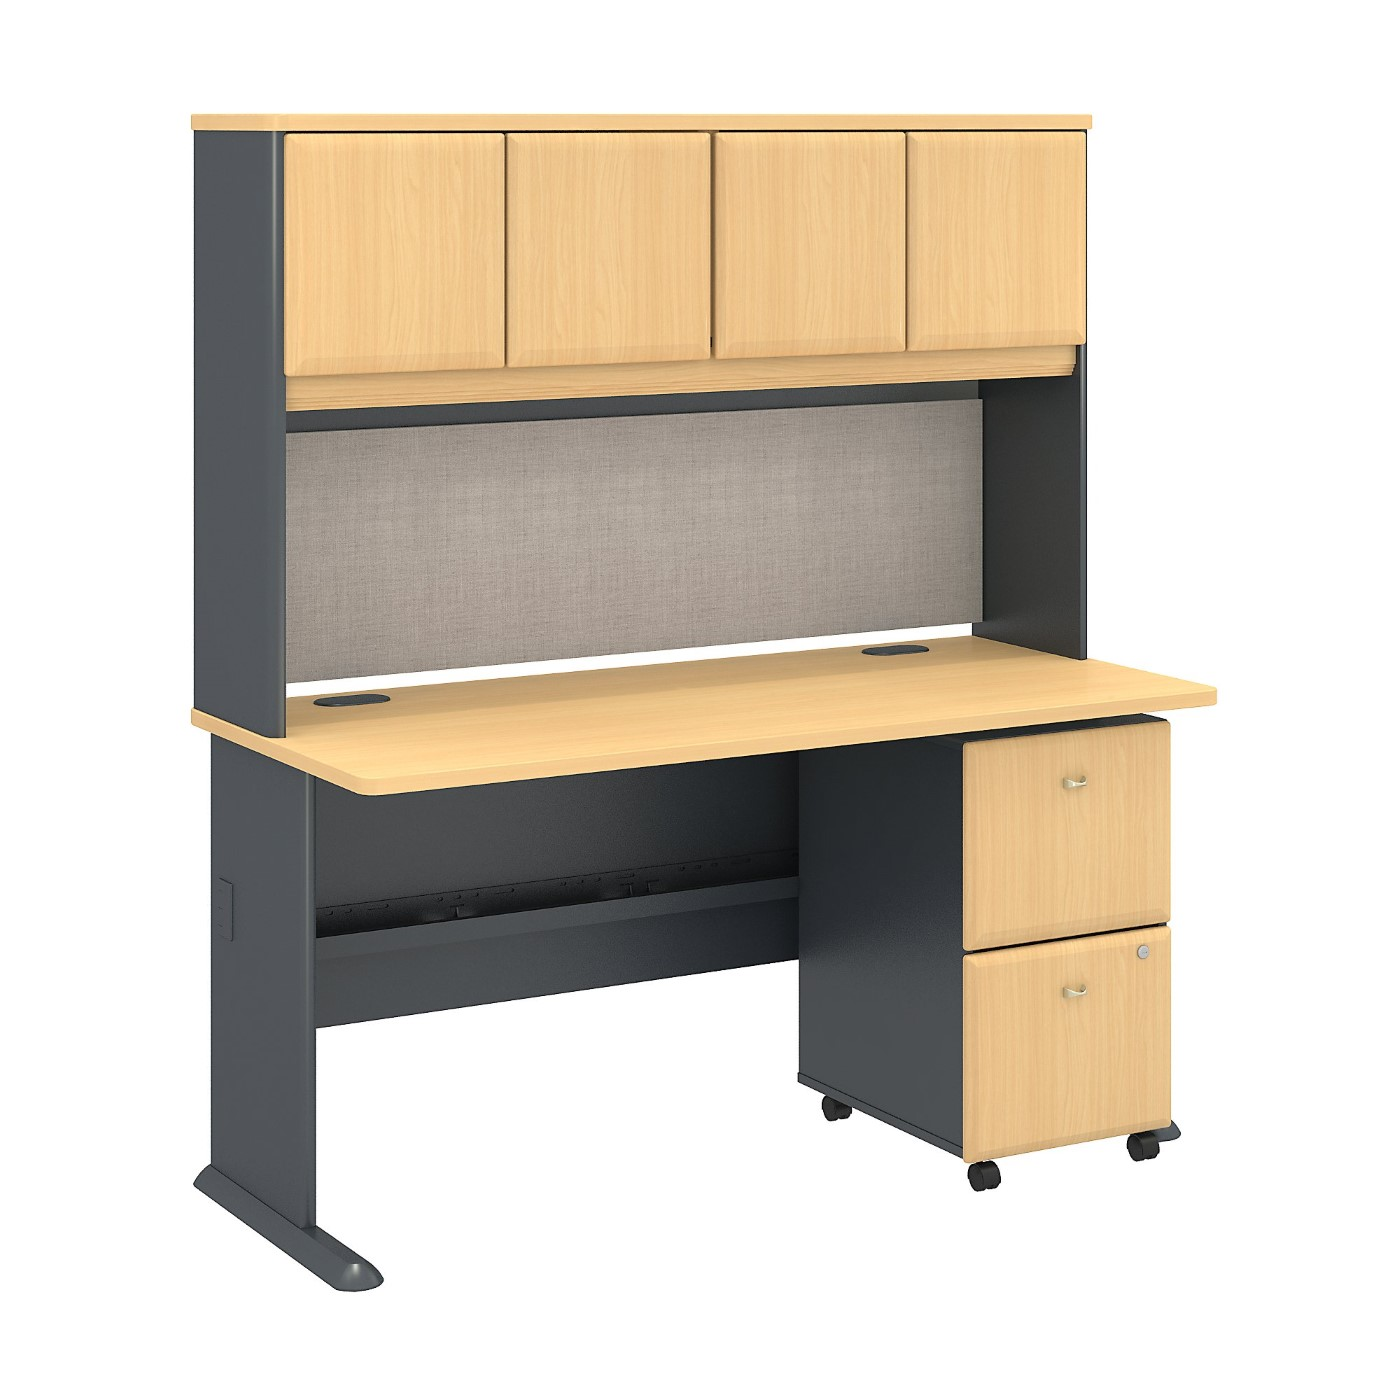 BUSH BUSINESS FURNITURE SERIES A 60W X 27D DESK WITH HUTCH AND 2 DRAWER MOBILE PEDESTAL. FREE SHIPPING SALE DEDUCT 10% MORE ENTER '10percent' IN COUPON CODE BOX WHILE CHECKING OUT.